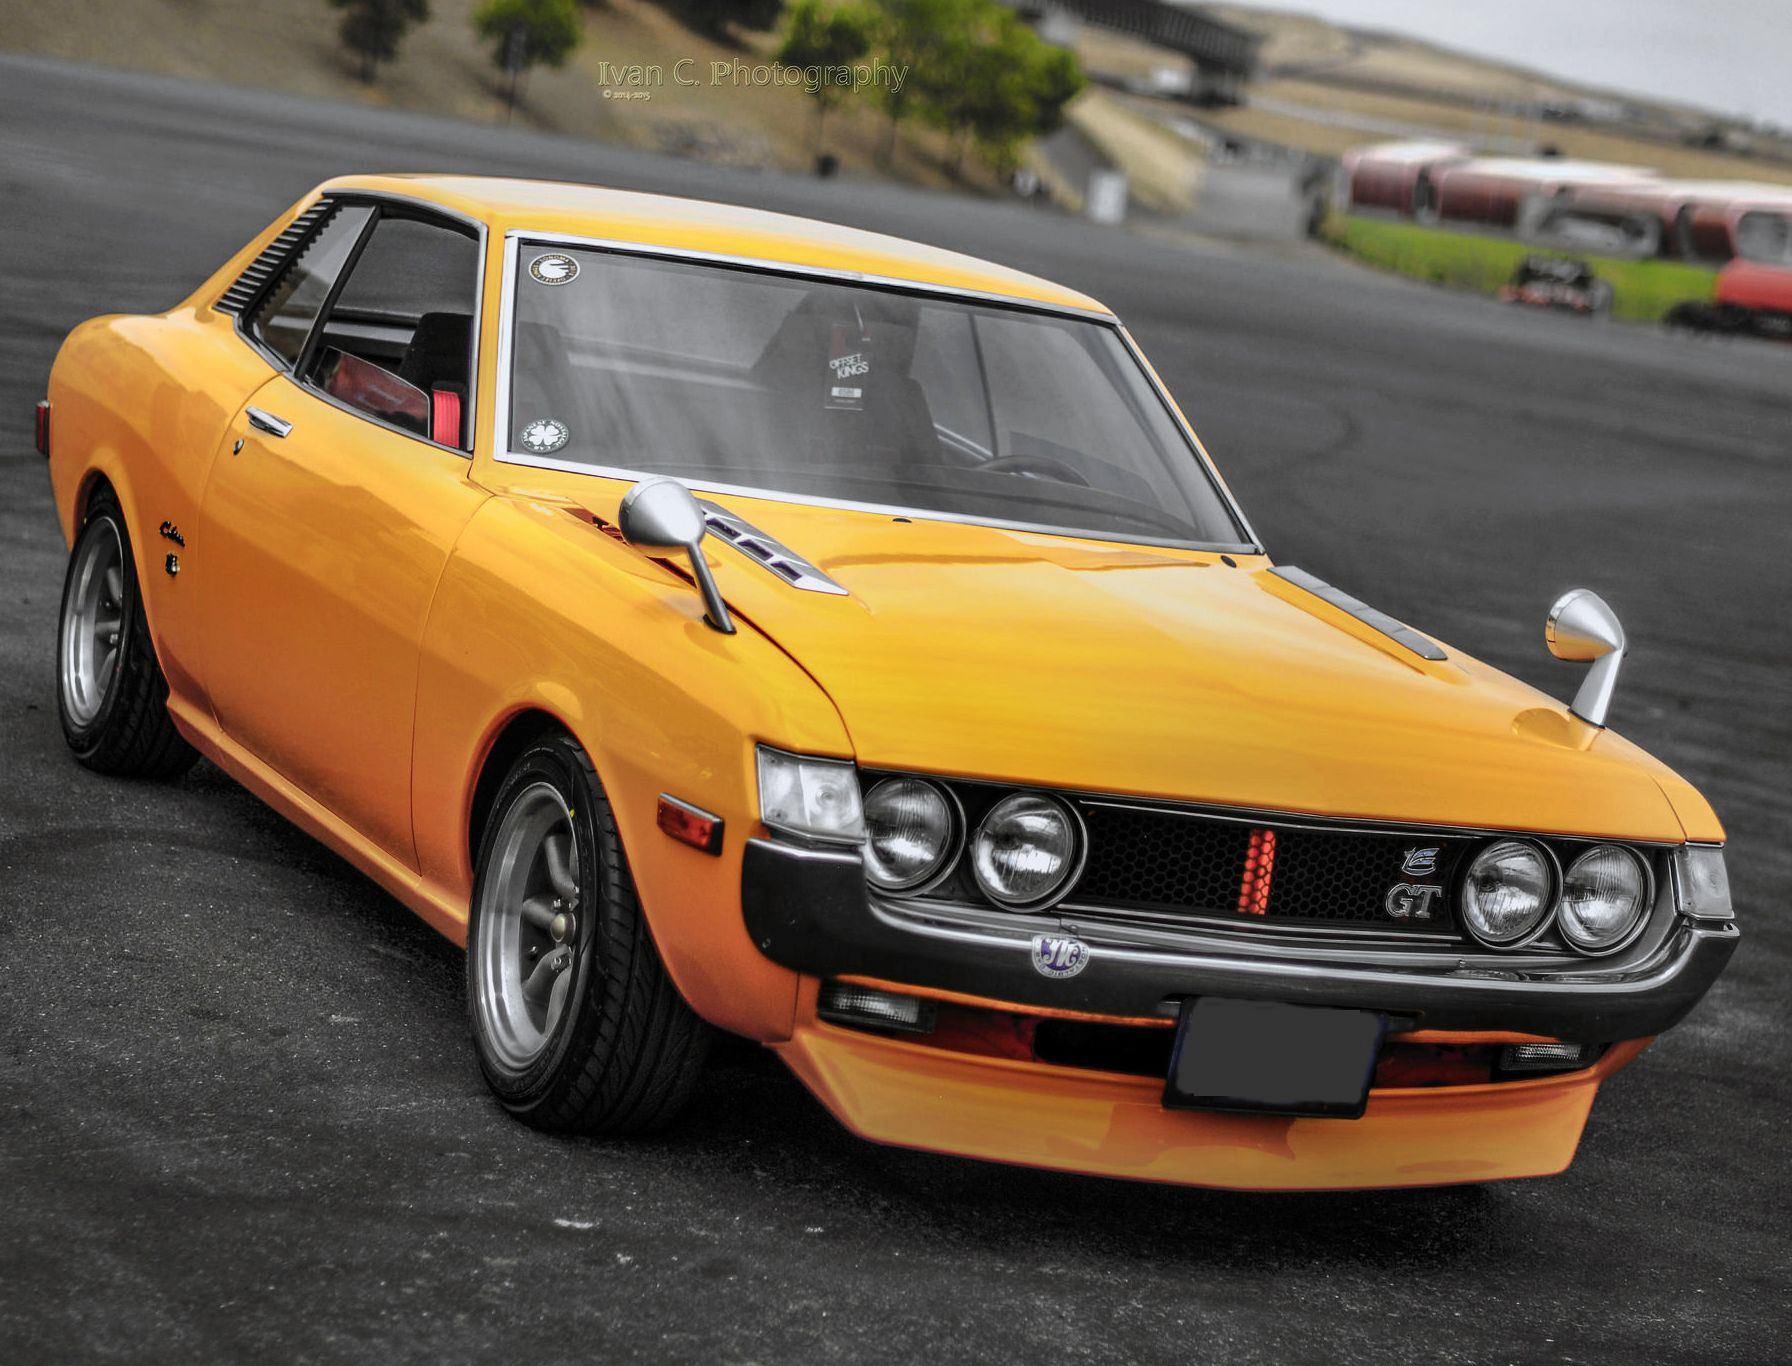 Ta22 Celica Gt Cars Pinterest Toyota And Ra21 Wiring Diagrams